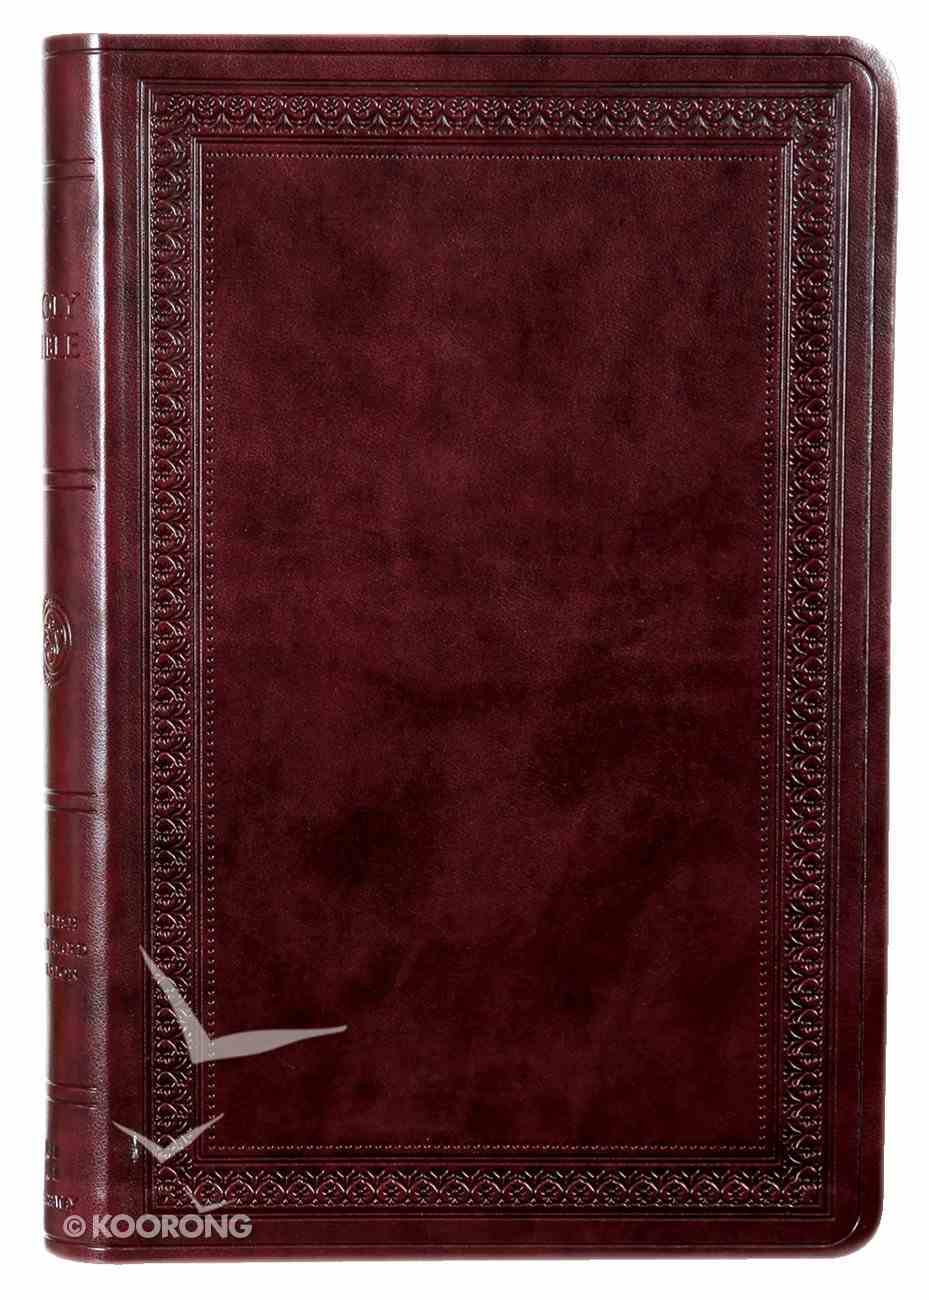 ESV Large Print Value Thinline Bible Mahogany Border (Black Letter Edition) Imitation Leather